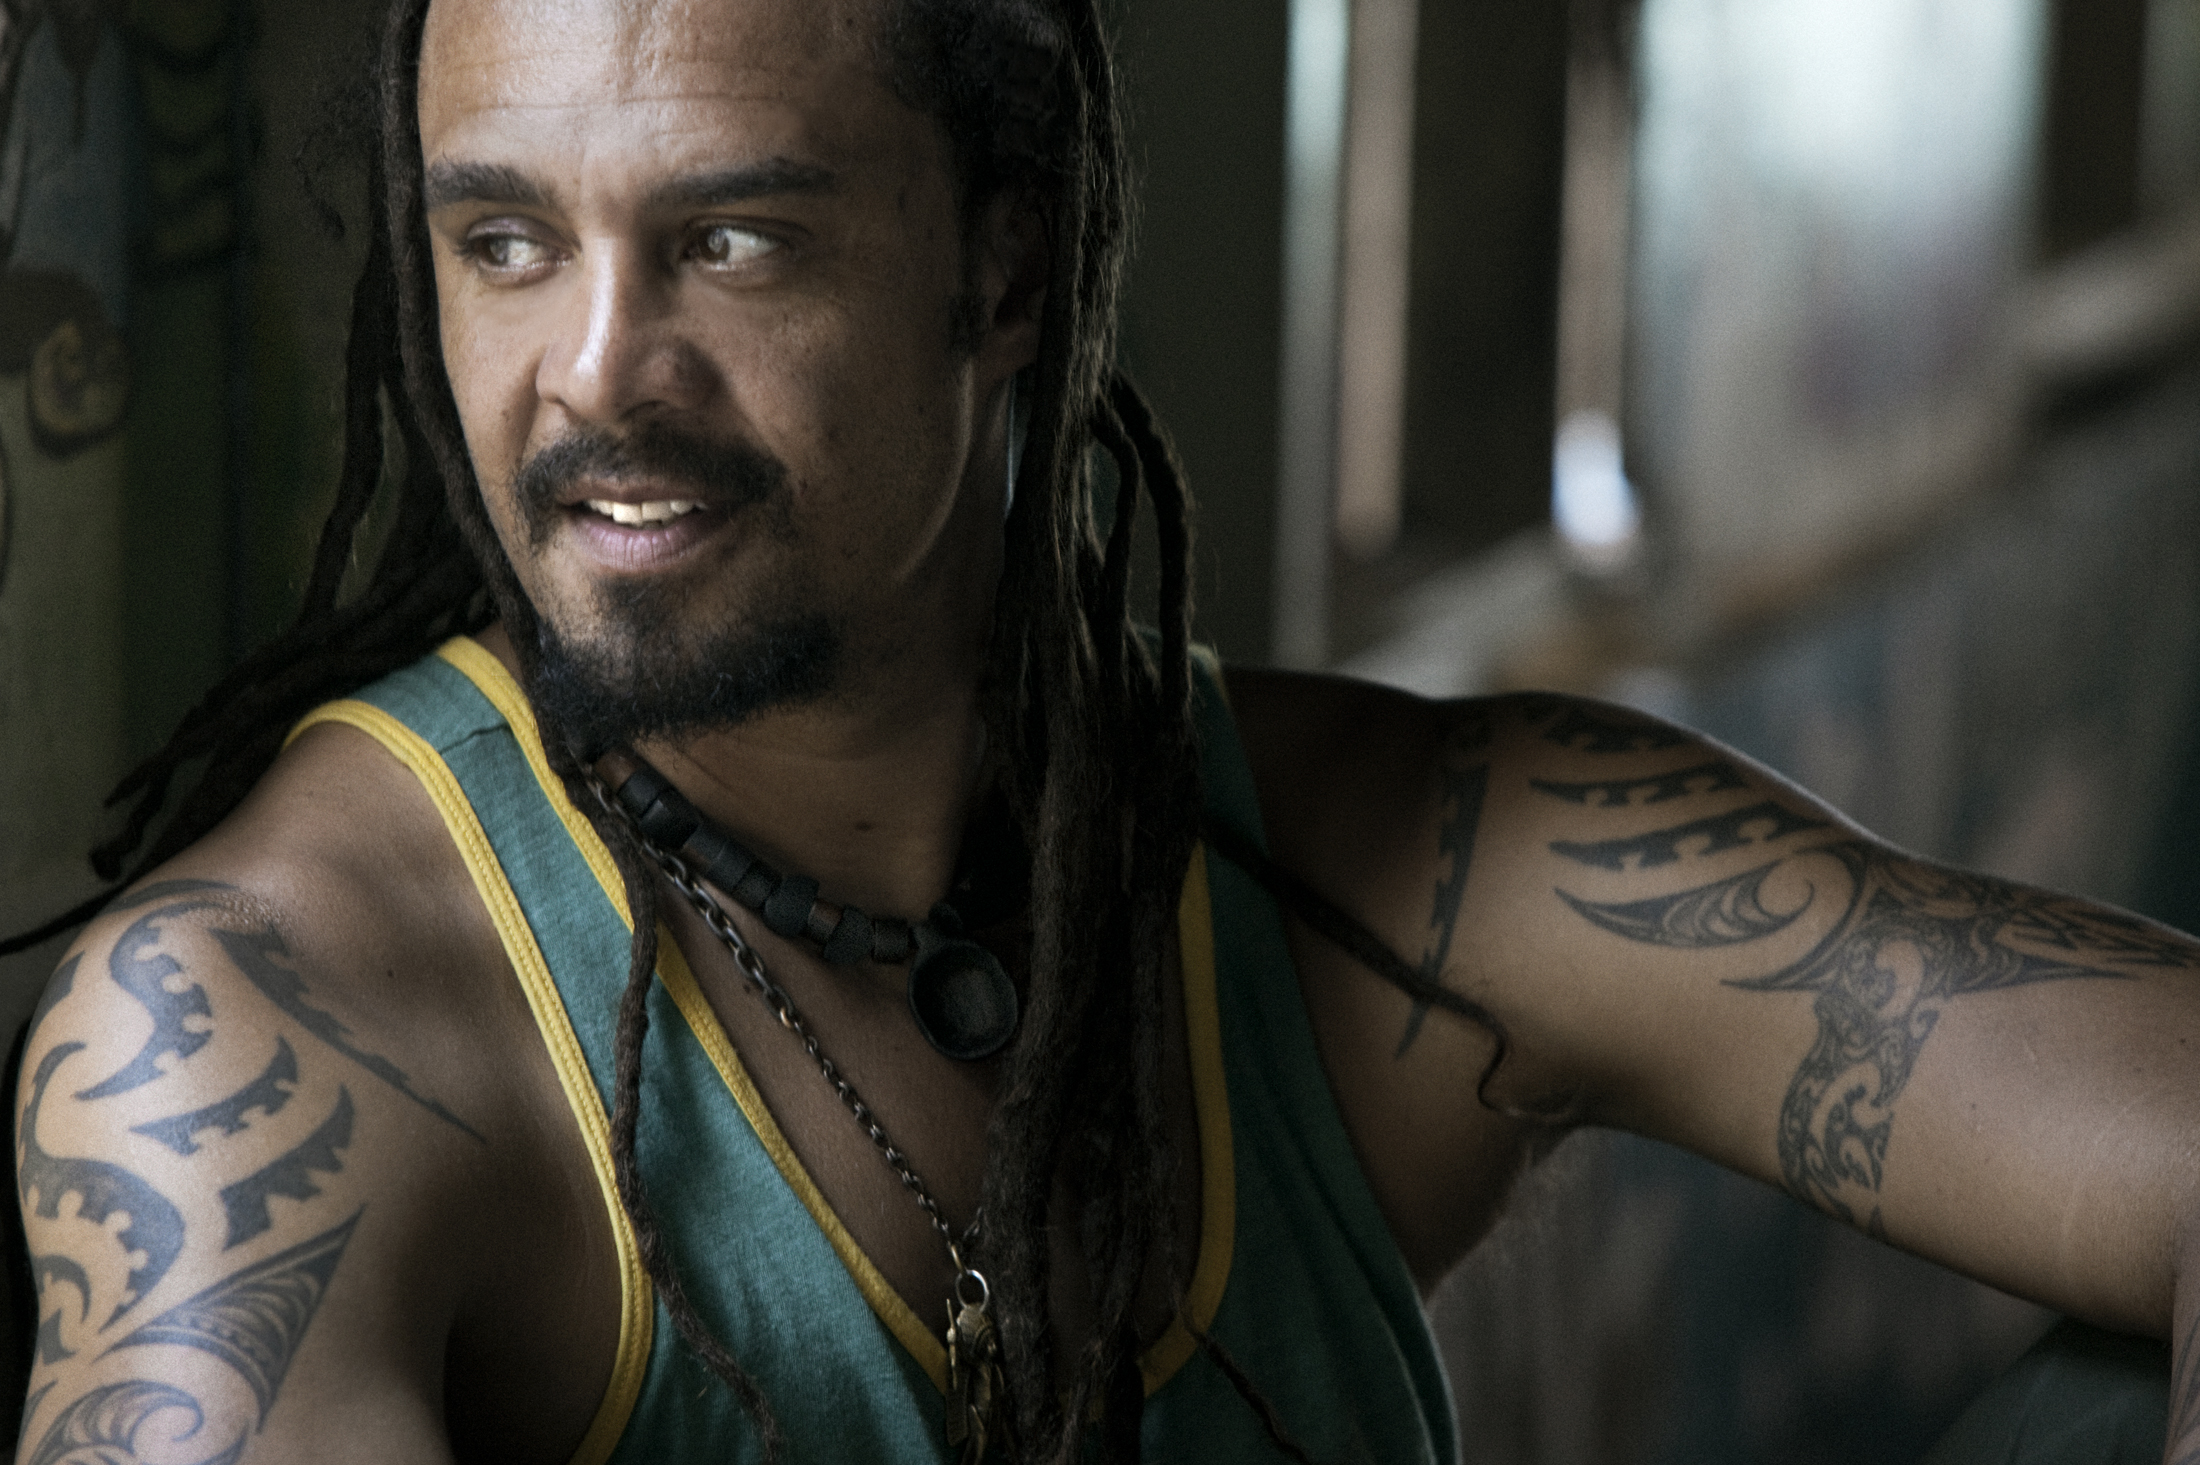 Michael Franti by James Minchin